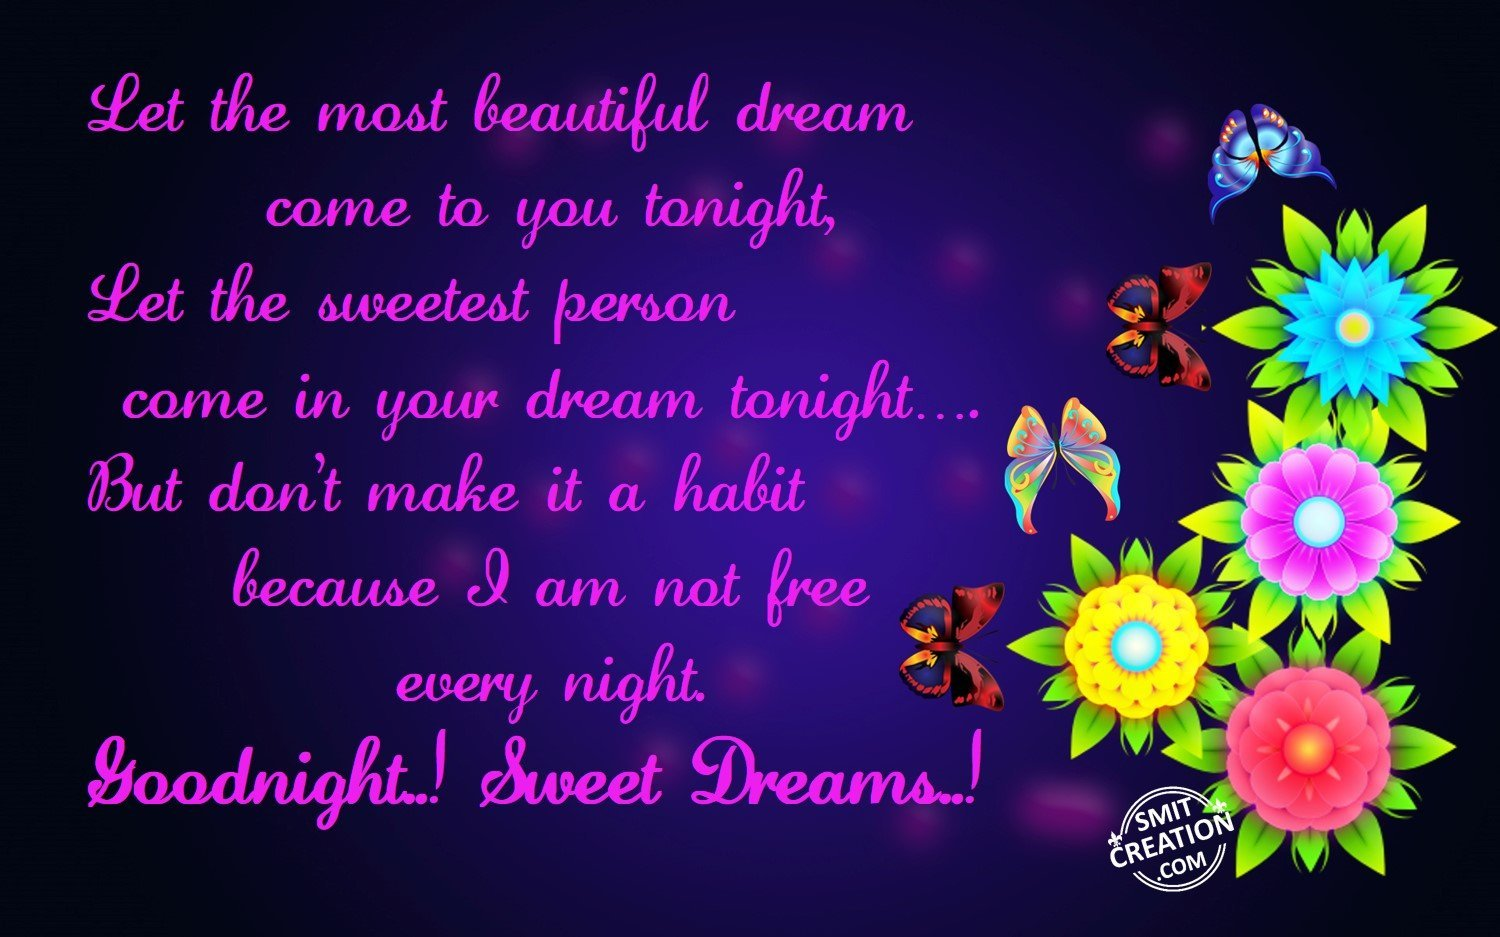 Good Night Message Pictures And Graphics Smitcreationcom Page 7